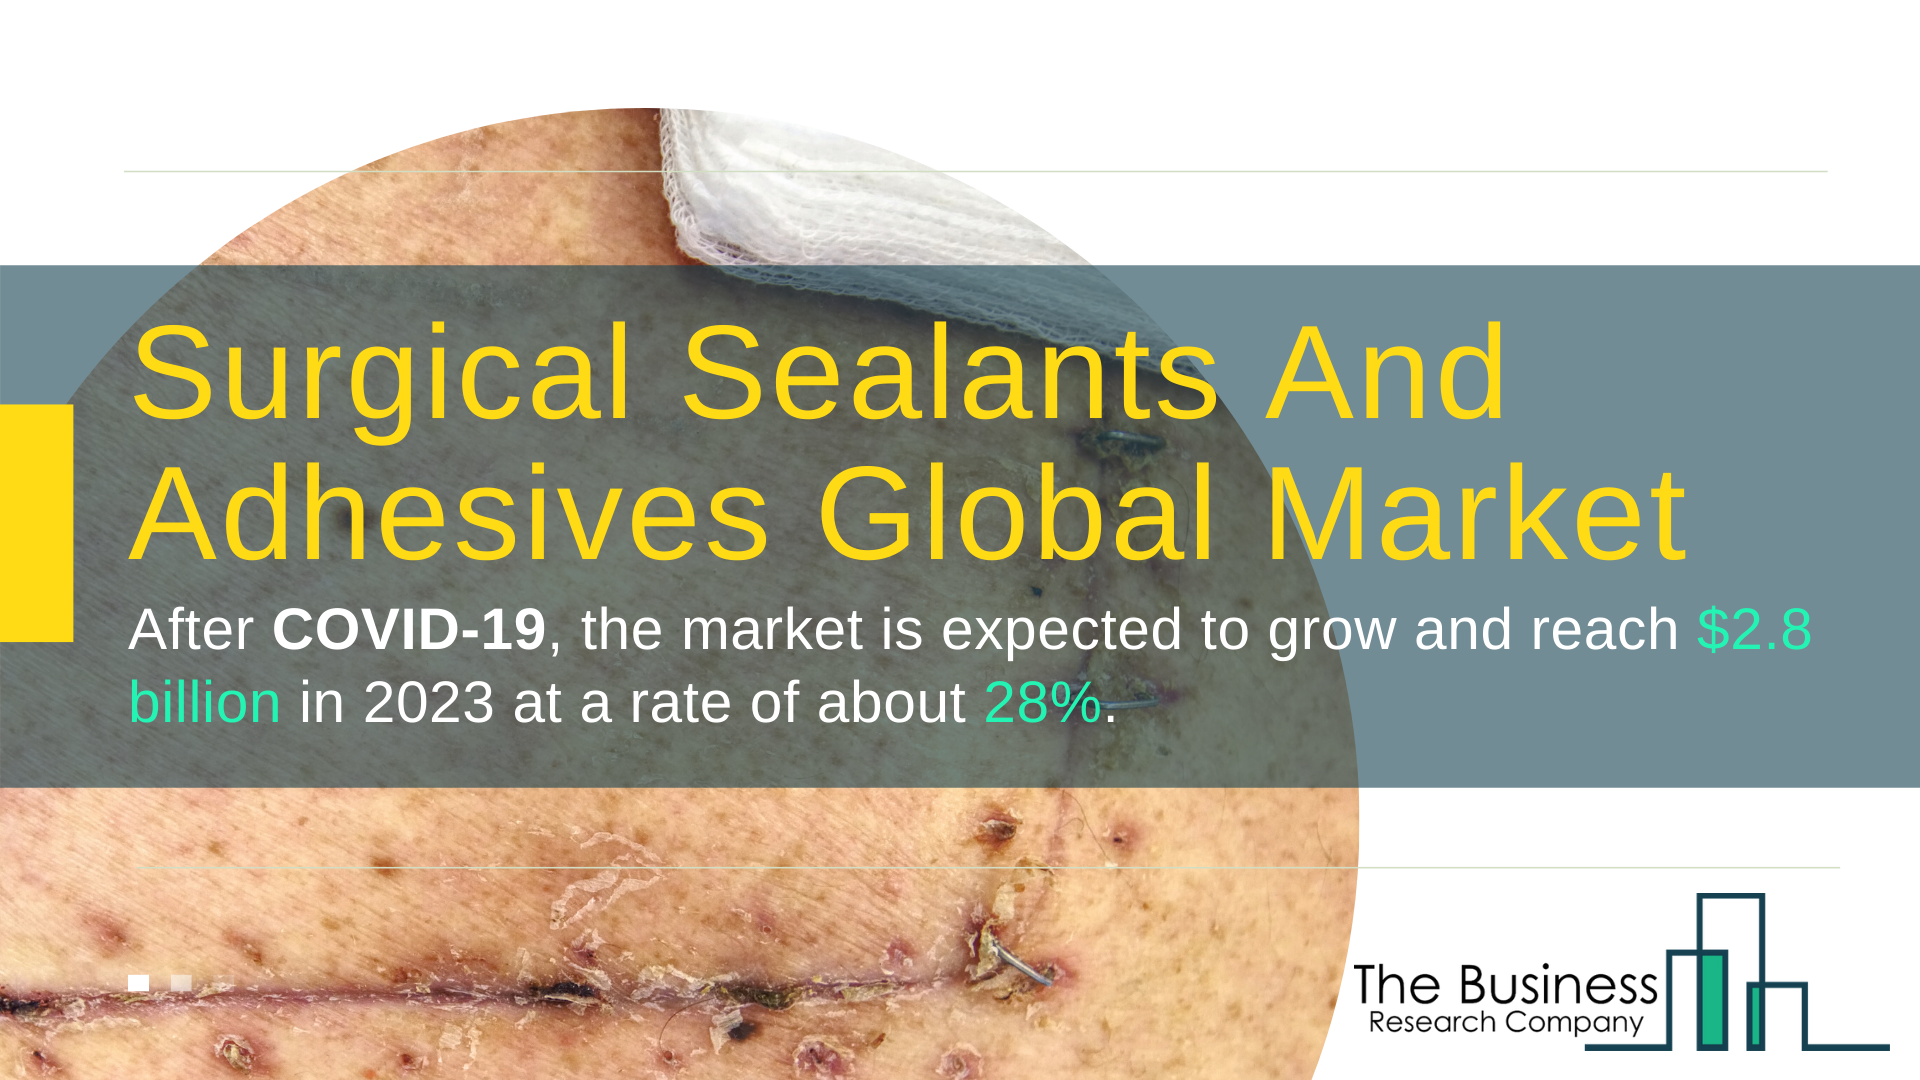 Global Surgical Sealants And Adhesives Market Value Expected To Reach $2.8 Billion By 2023